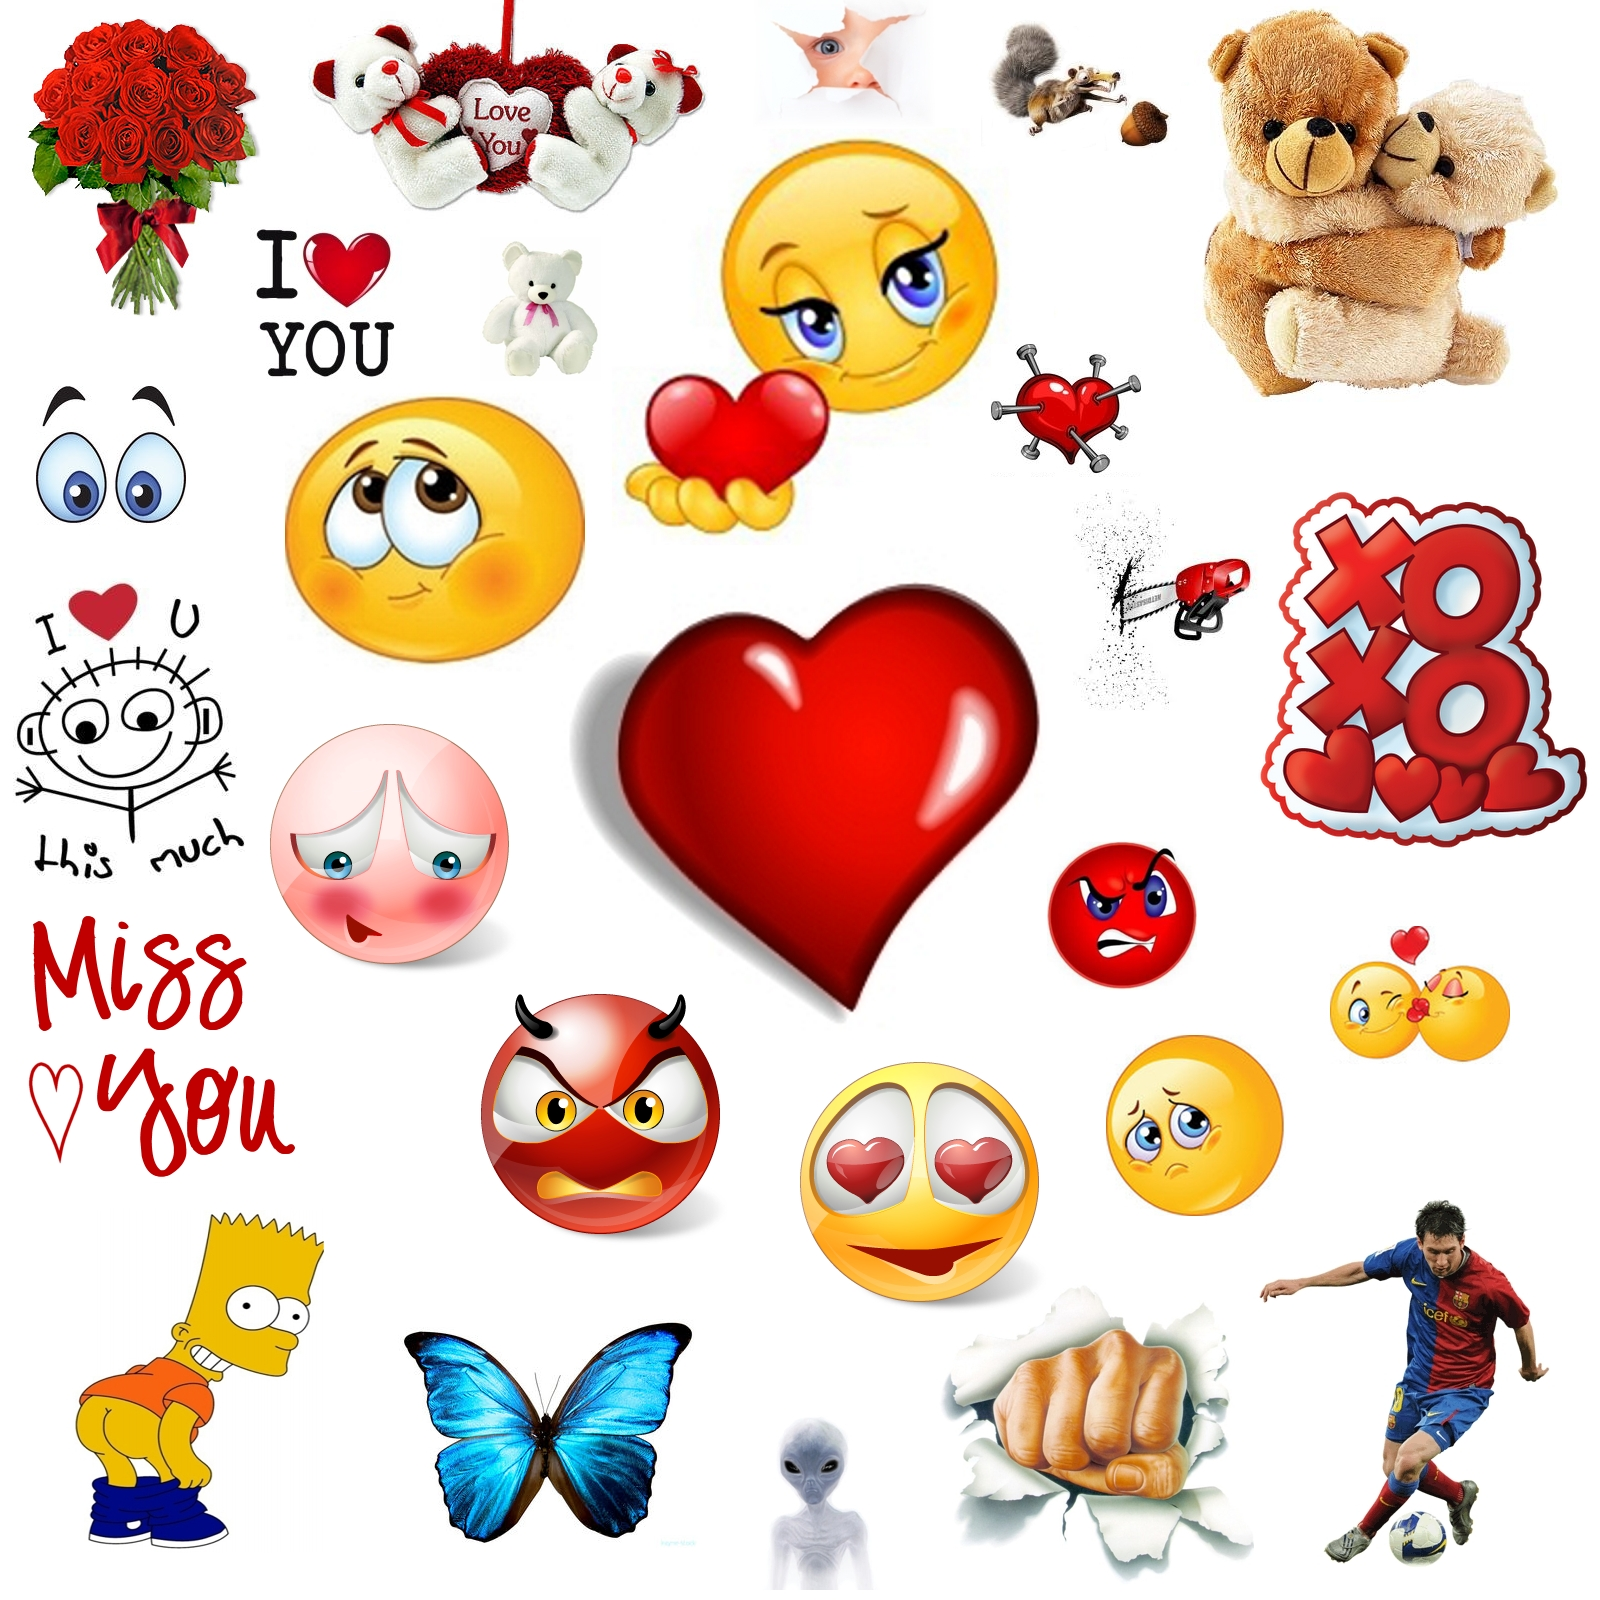 10 Facebook Chat Emoticons Images Fb Emoticons Facebook Chat